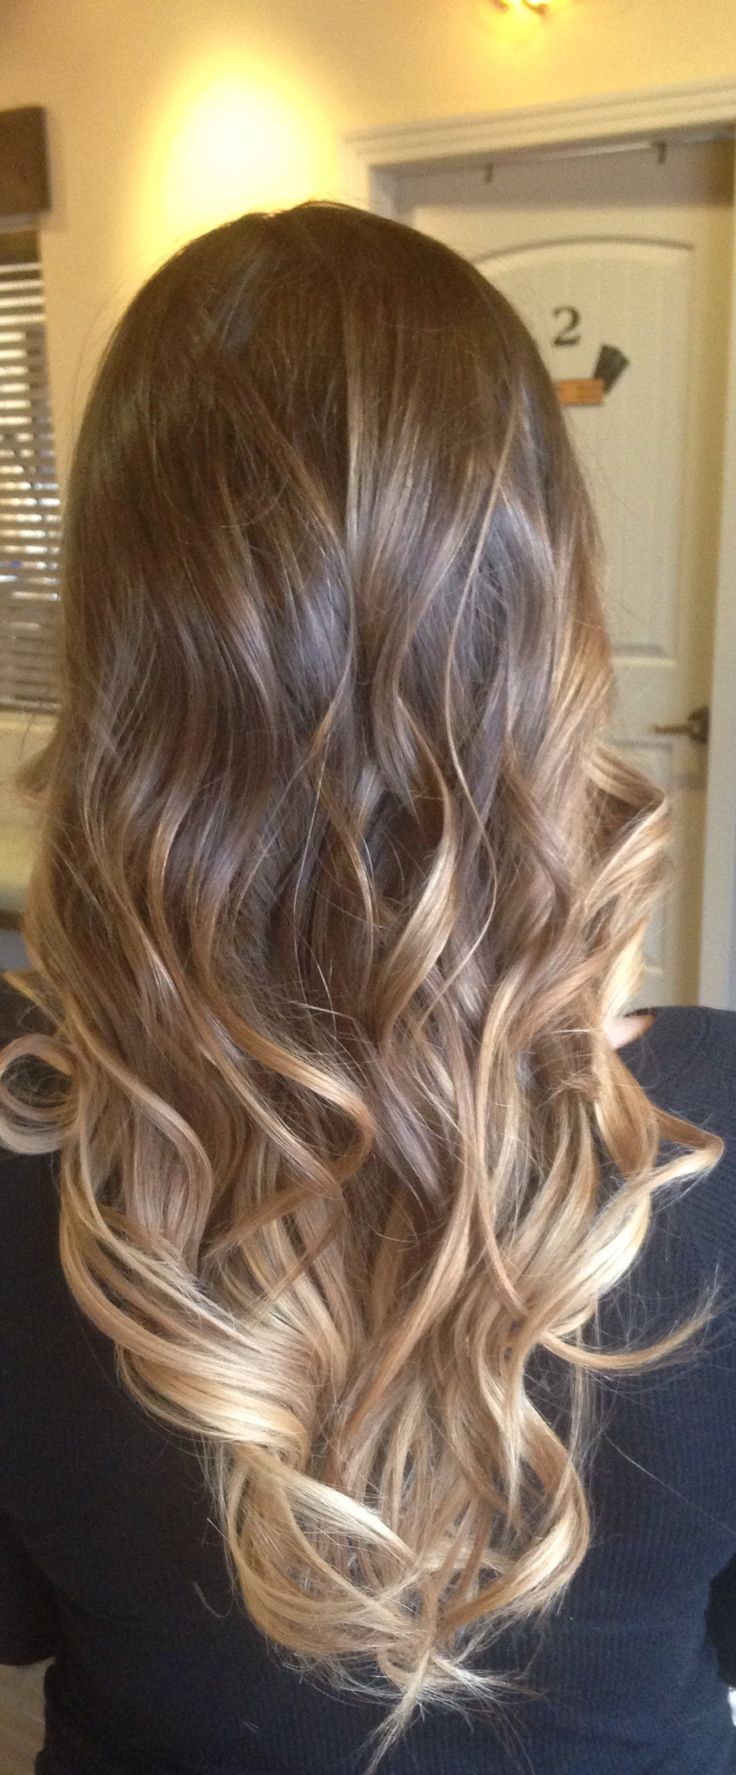 For S. A combination of balayage and ombre in hair. If you want very light areas as you get used to a new darkness level (it will feel way darker than it is at first), keep it away from your face.: